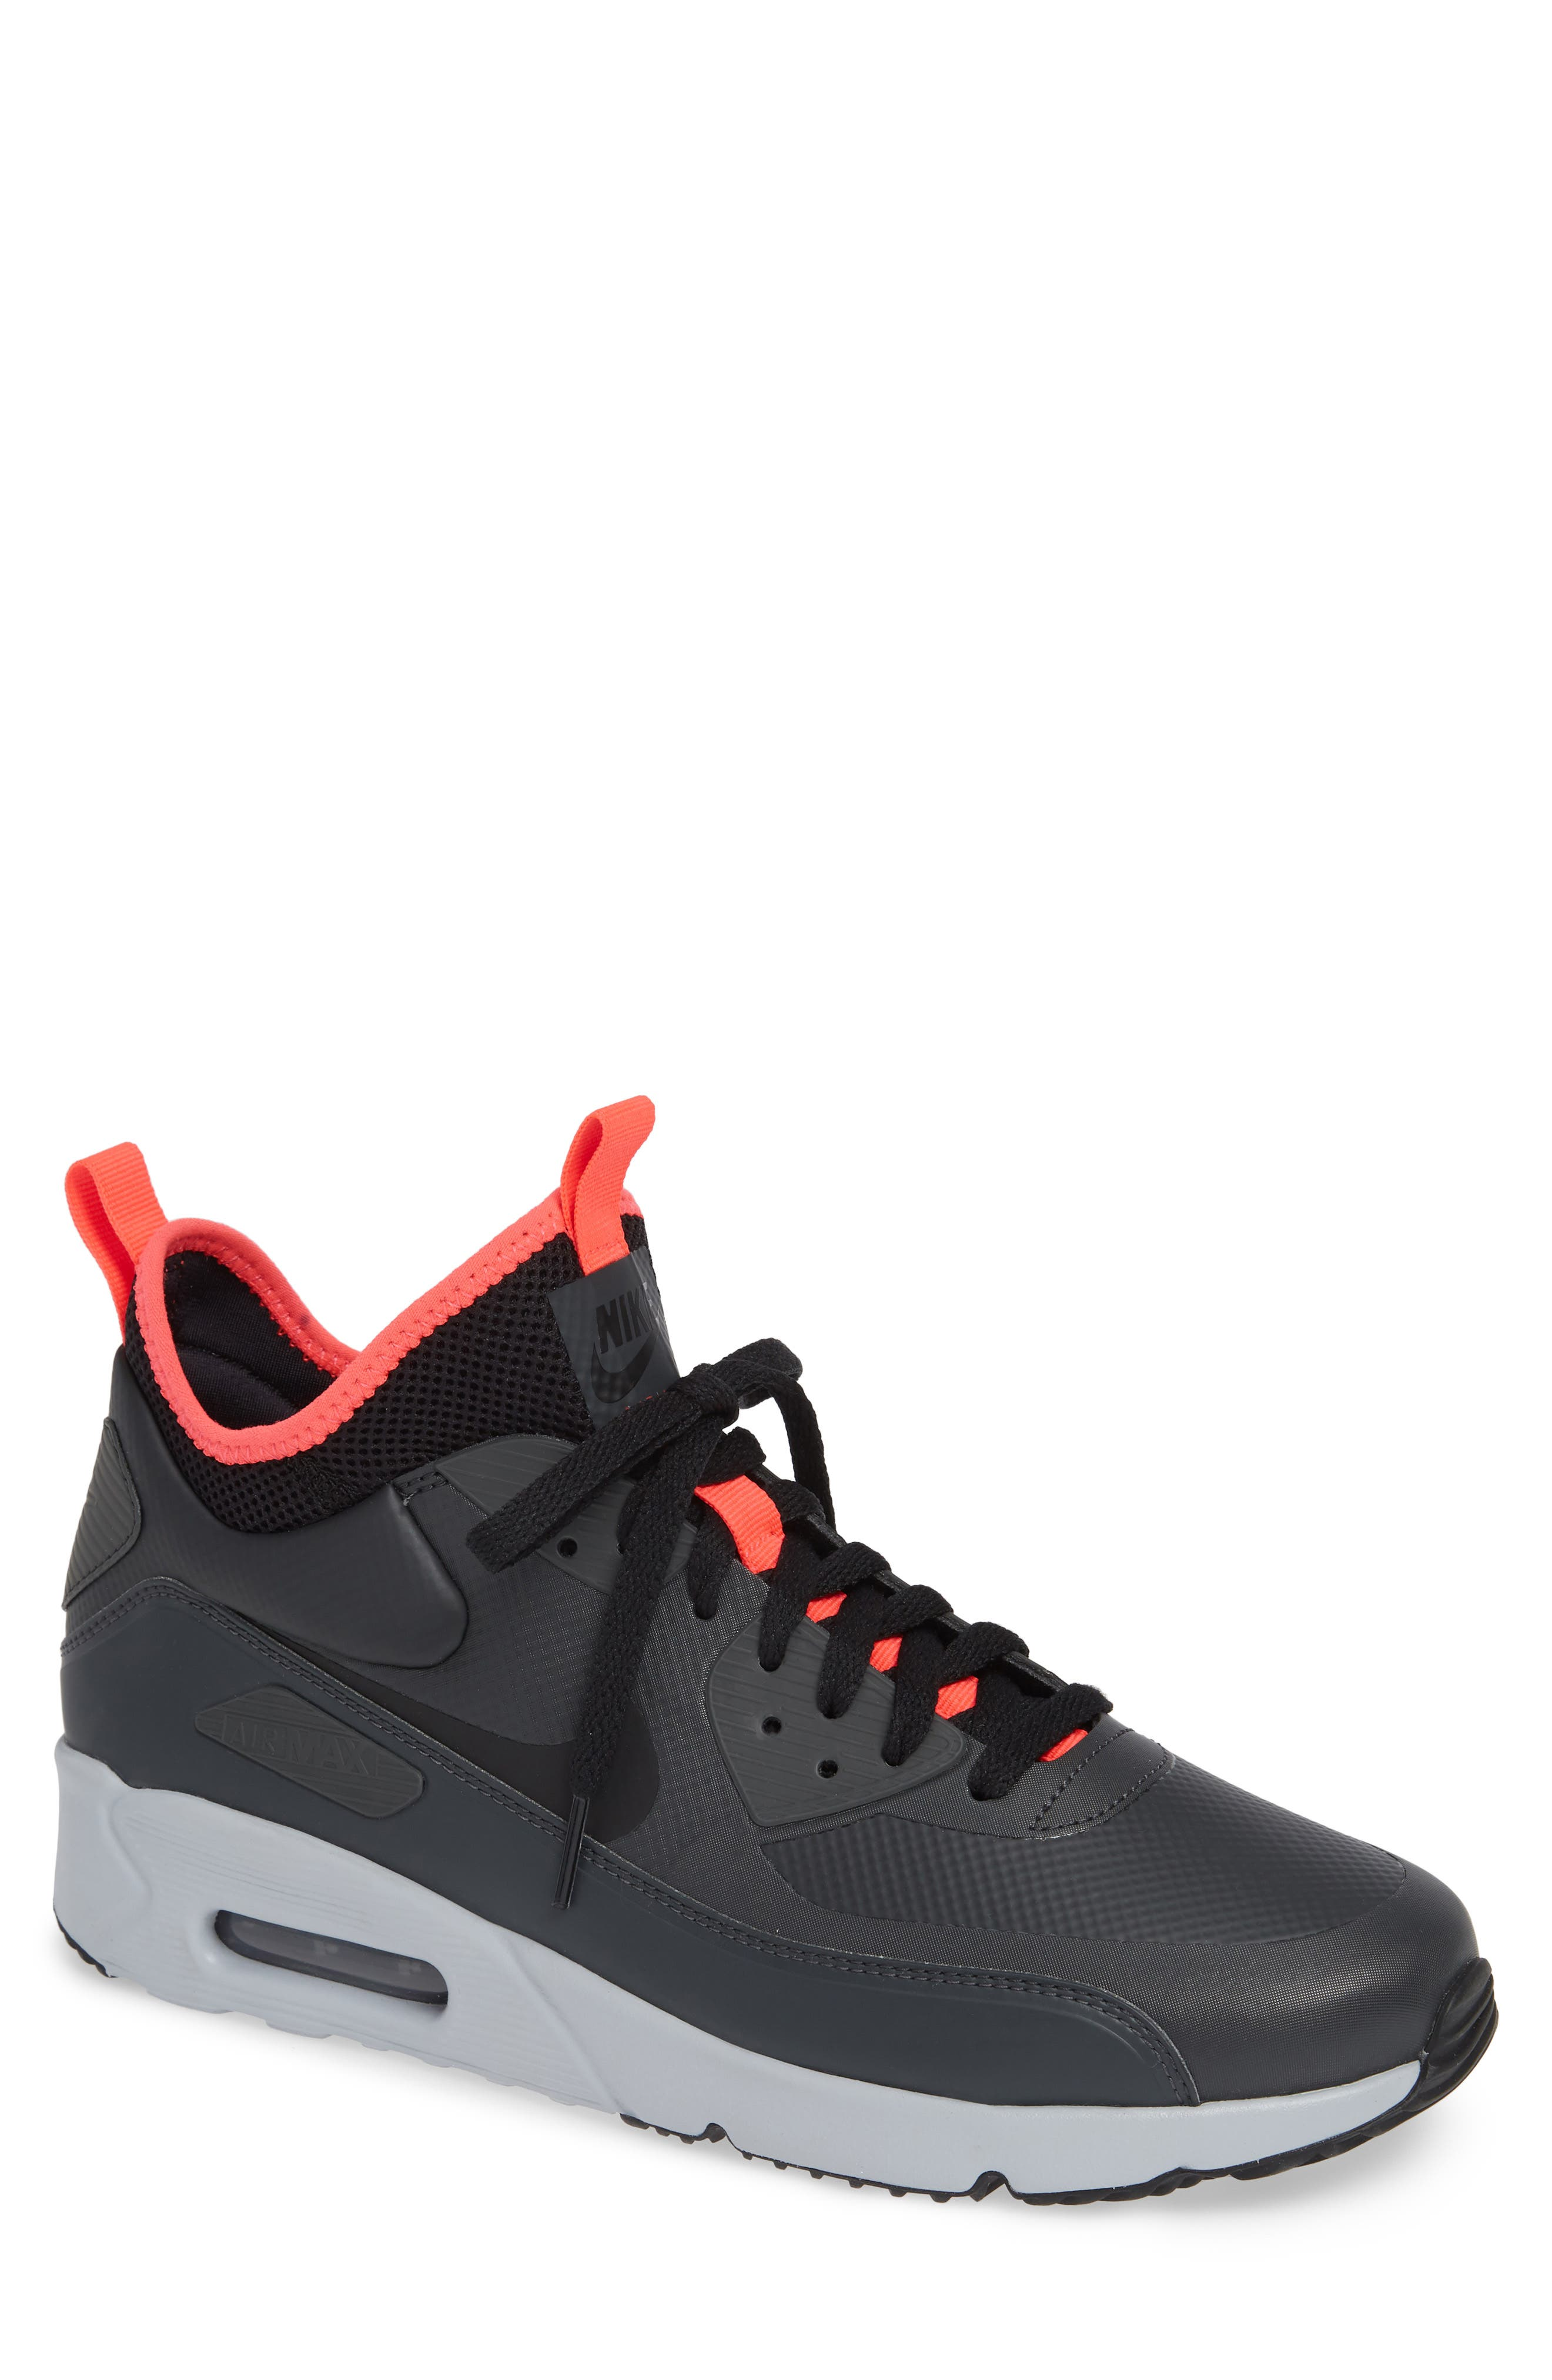 Air Max 90 Ultra Mid Winter Sneaker,                             Main thumbnail 1, color,                             ANTHRACITE/ BLACK/ SOLAR RED